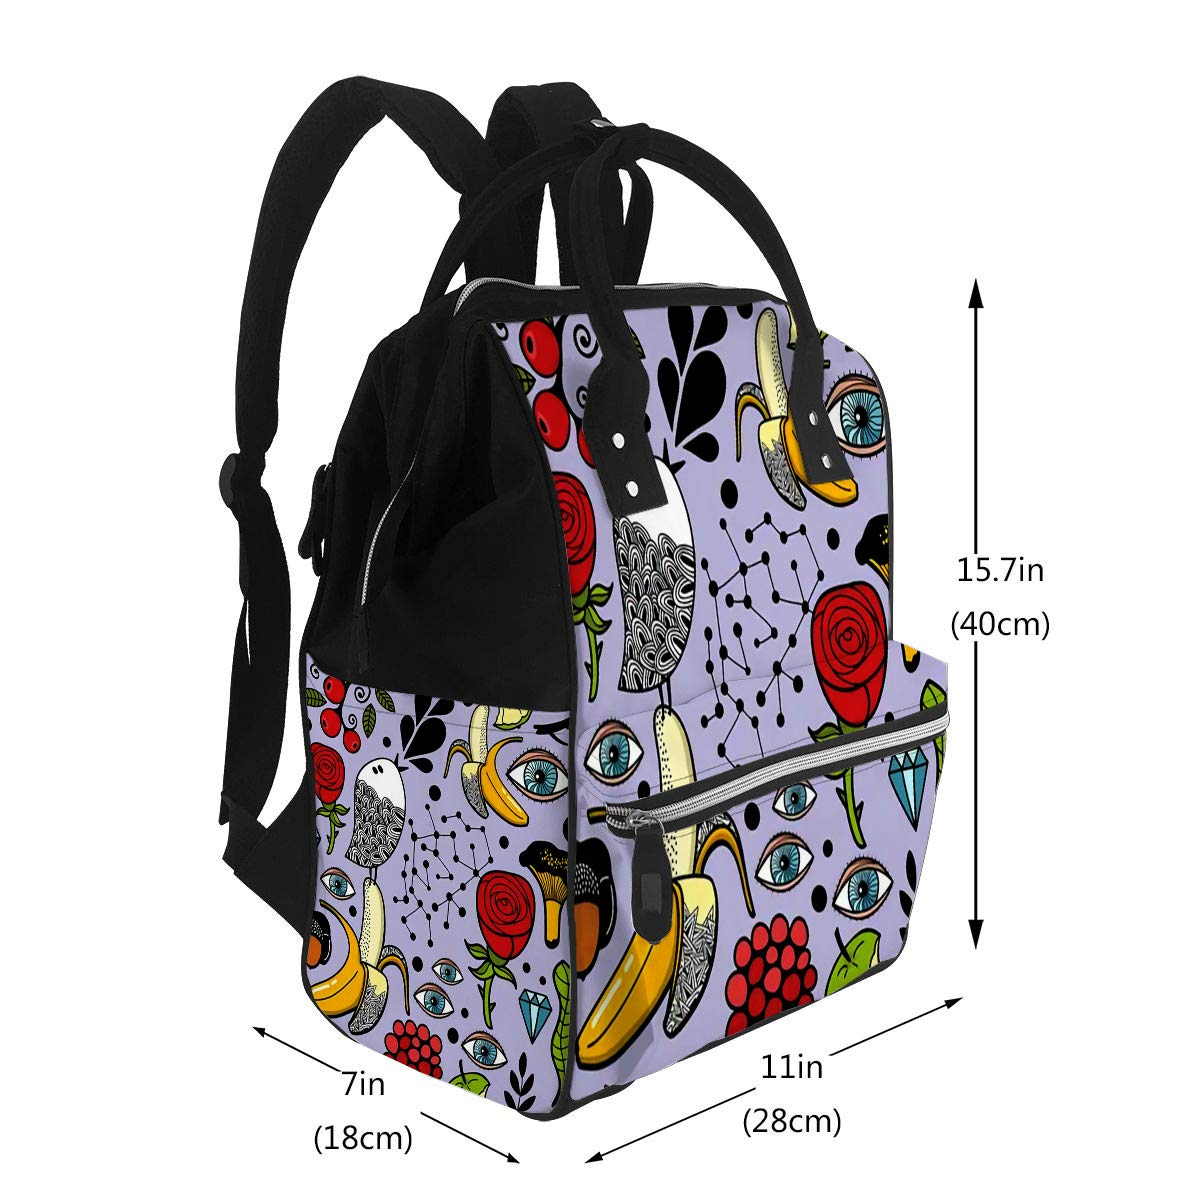 Baby Care Diaper Backpack Human Eyes and Nature Elements Art Diaper Bags Backpack